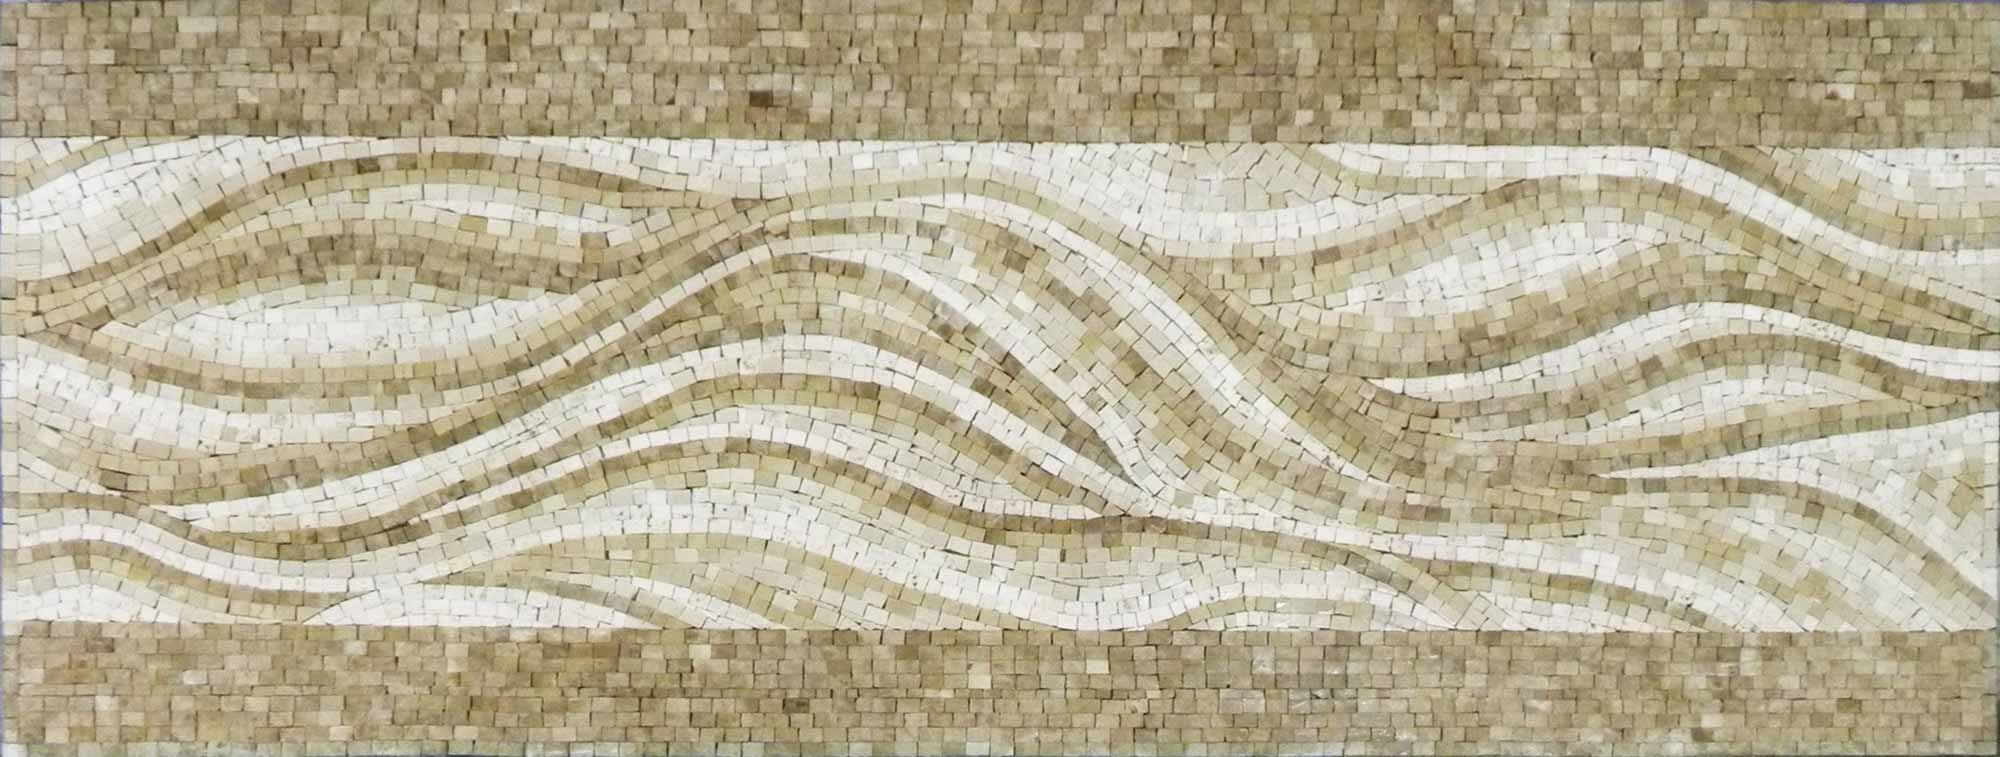 Mosaic Tile Patterns The Waves Pic